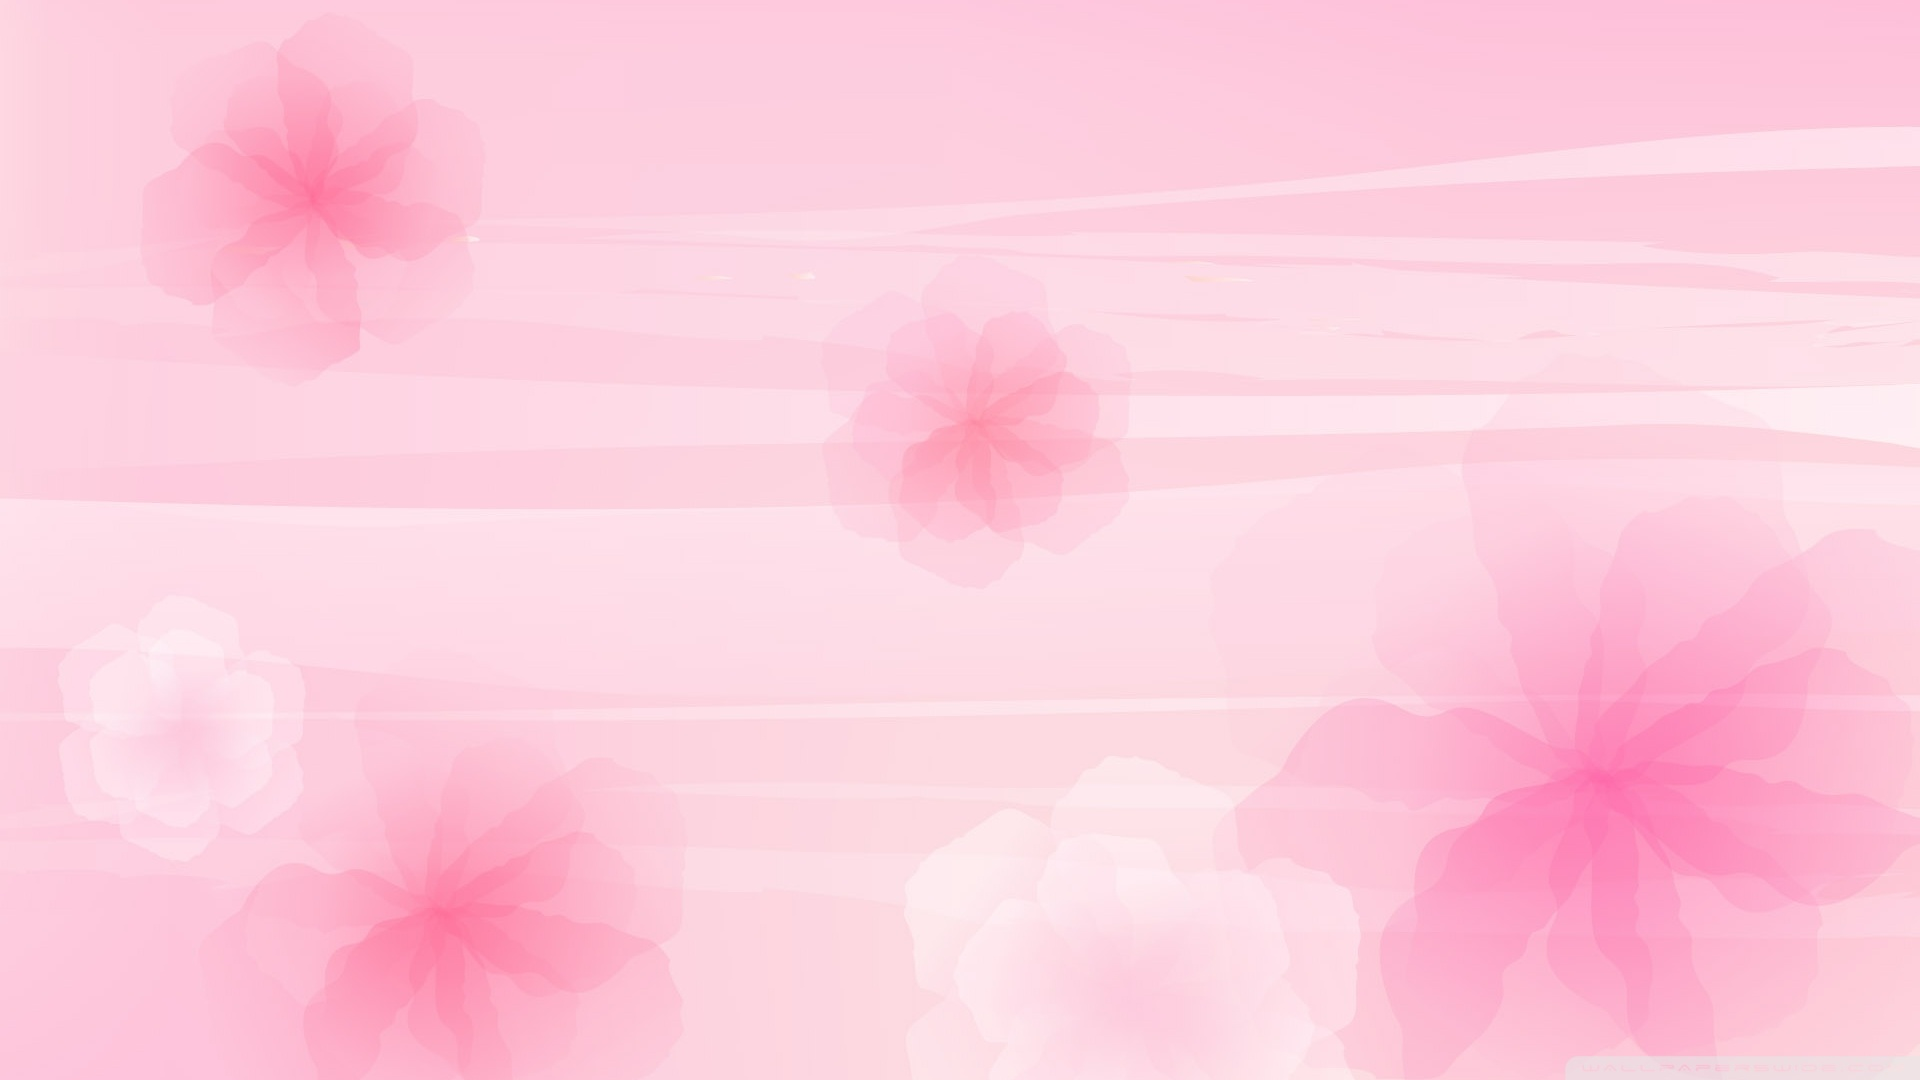 Download Pink Color 1080p Wallpaper High Definition High Quality